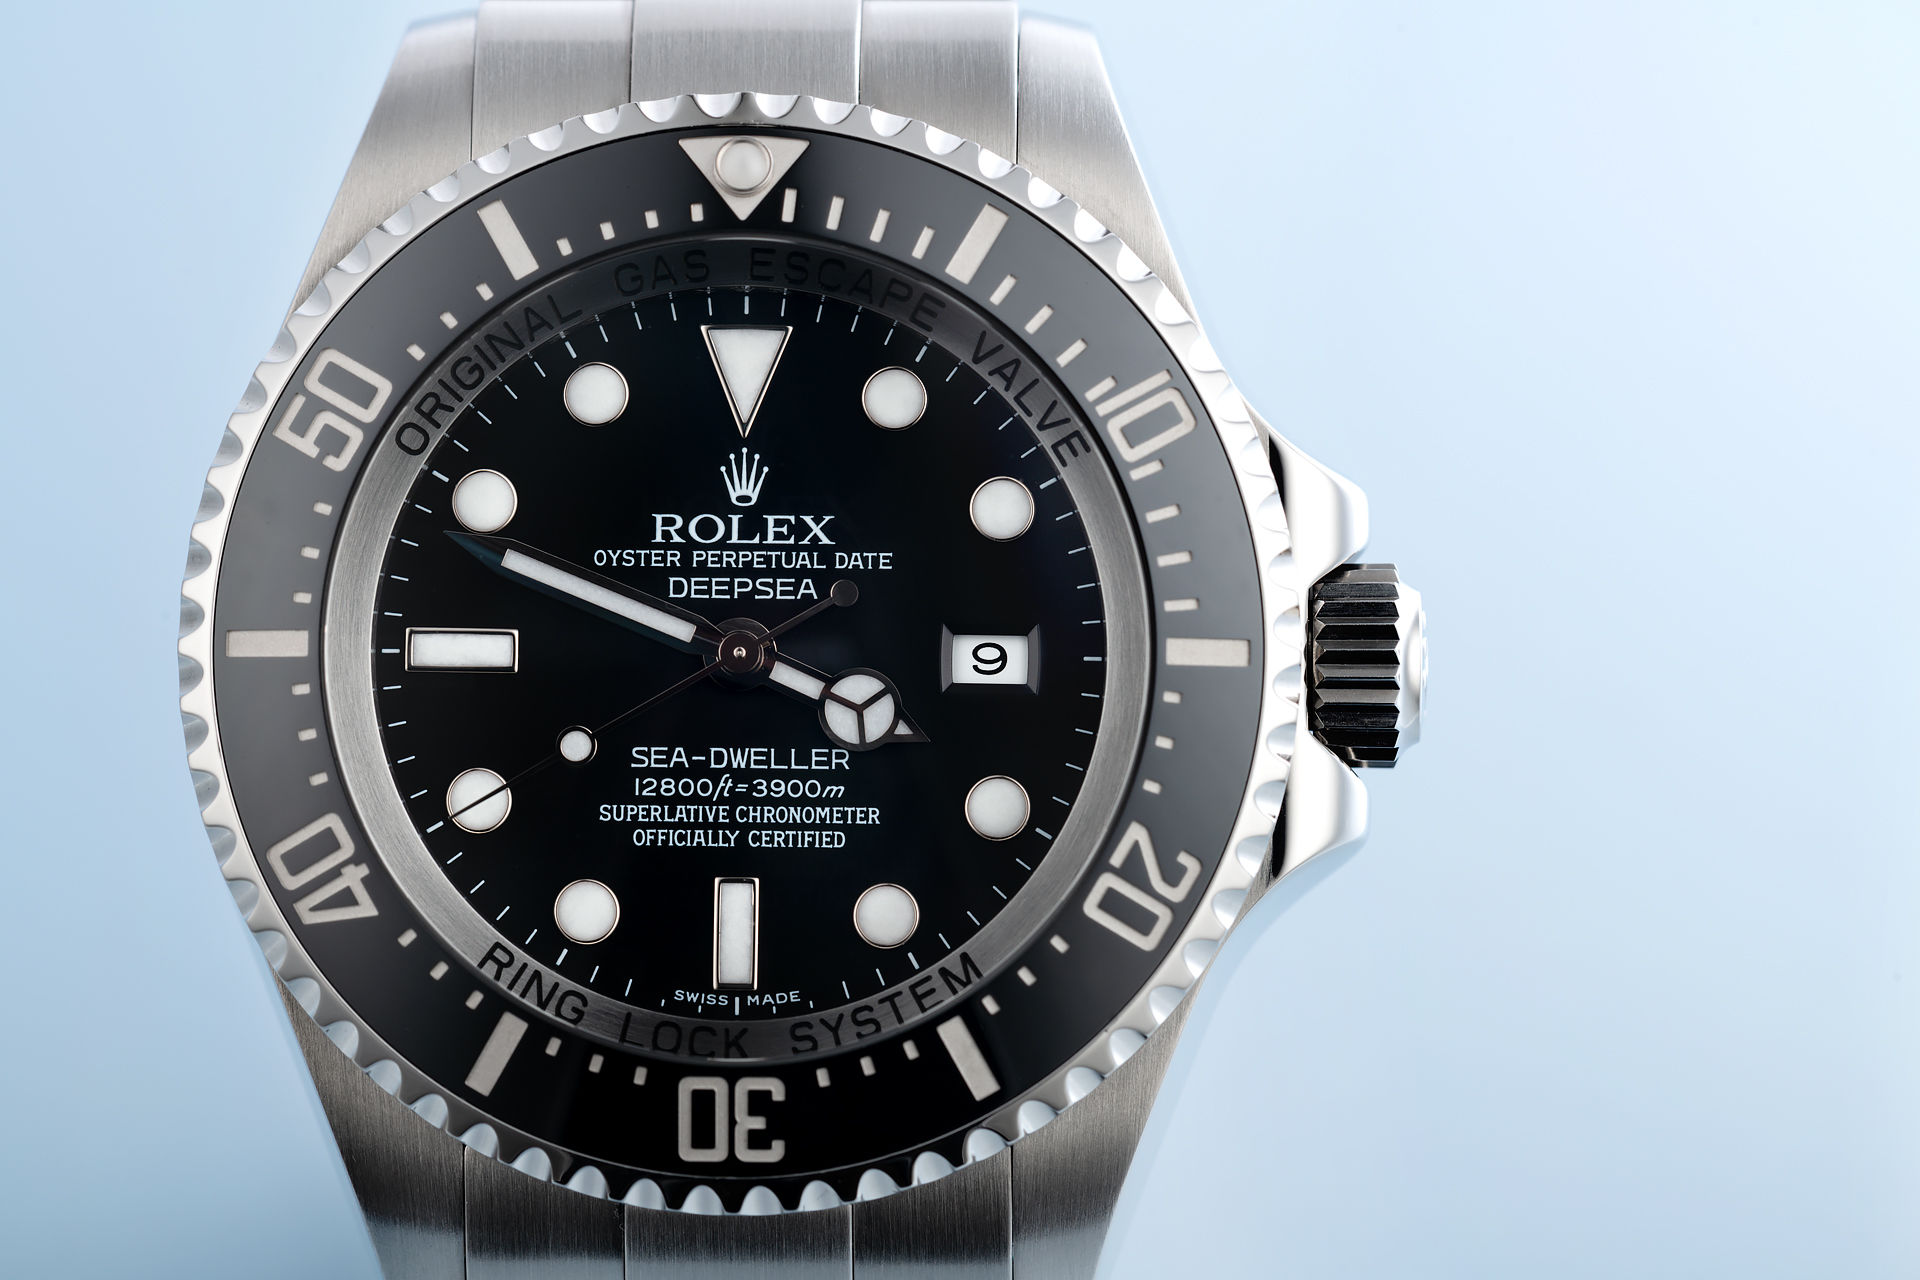 ref 116660 | Full Set 'Rolex Service Warranty' | Rolex Sea-Dweller Deepsea